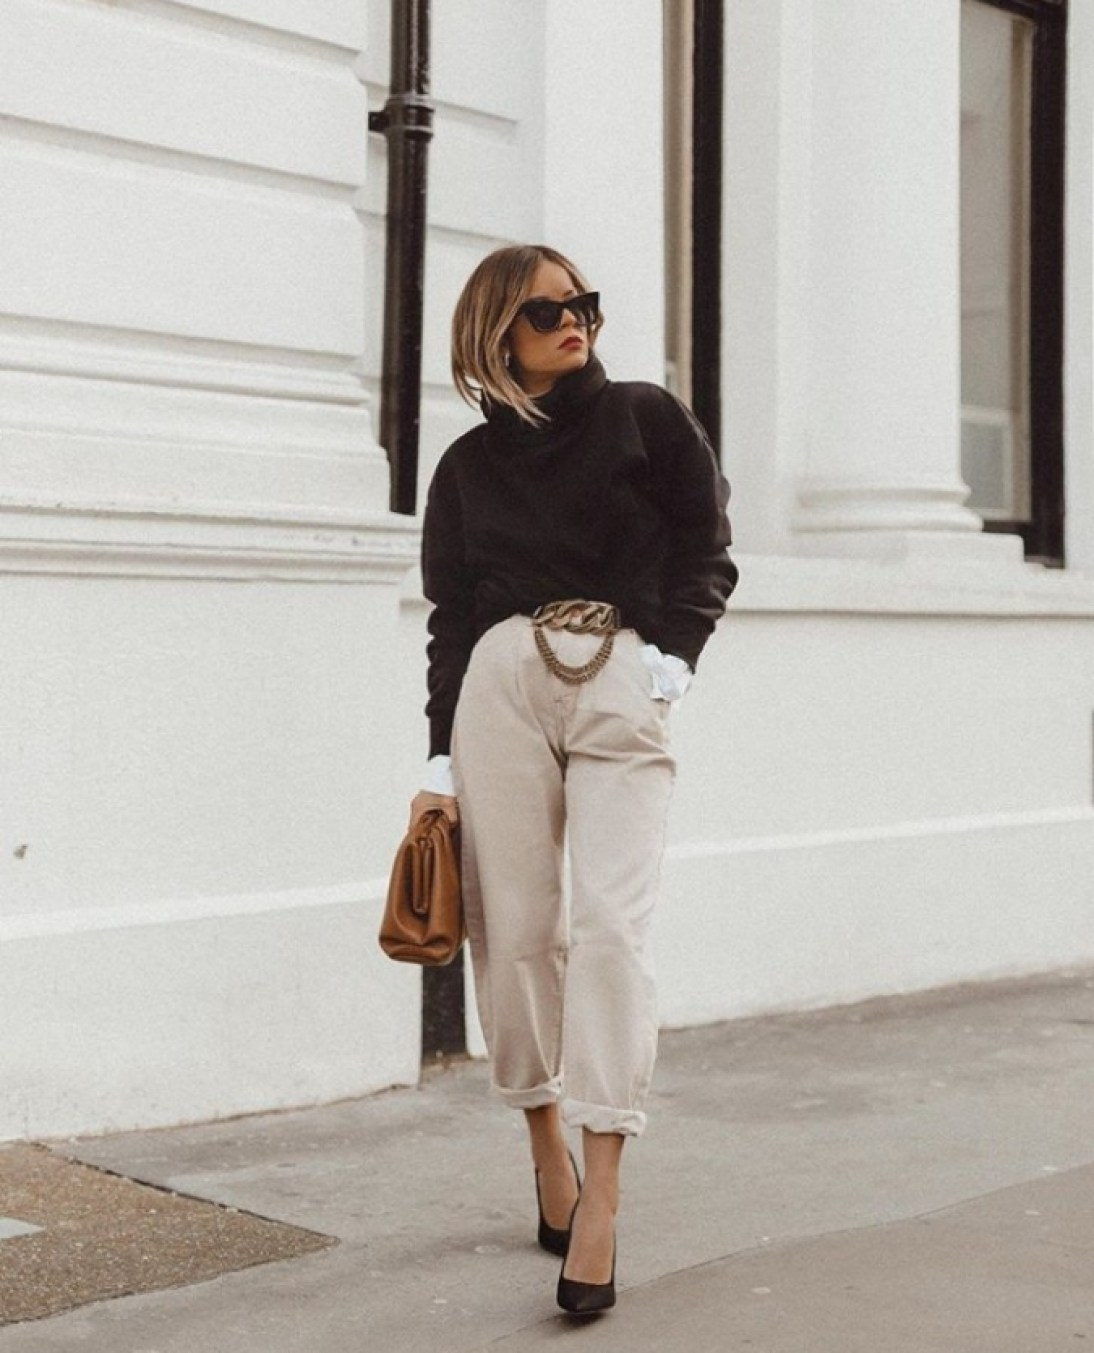 Women's Cuffing Pants Guide: How To Cuff Pants Like A True Fashionista